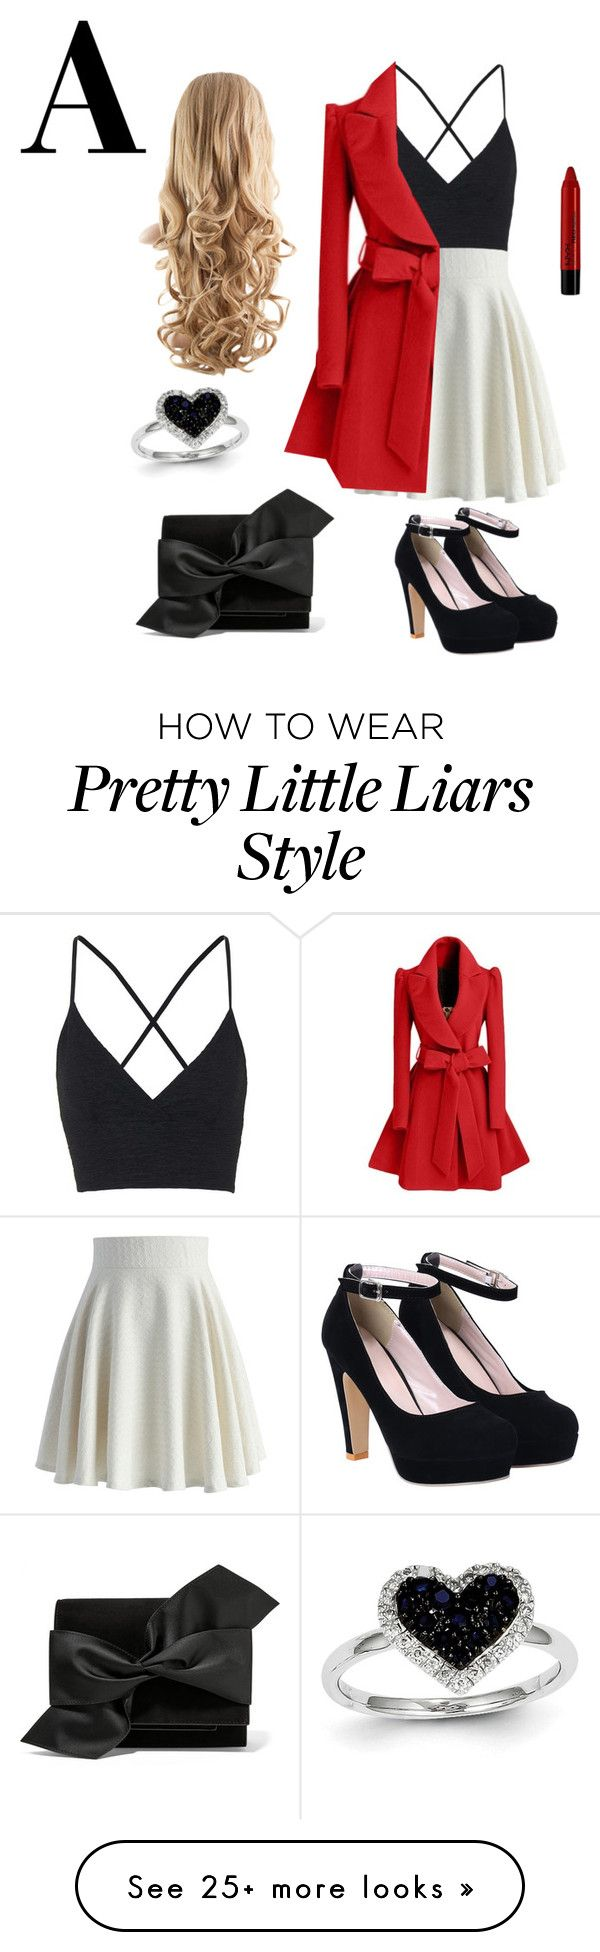 """A from pretty little liars"" by wedonthavetolivethisway on Polyvore featuring Chicwish, Topshop, NYX, Victoria Beckham, Kevin Jewelers, women's clothing, women's fashion, women, female and woman"